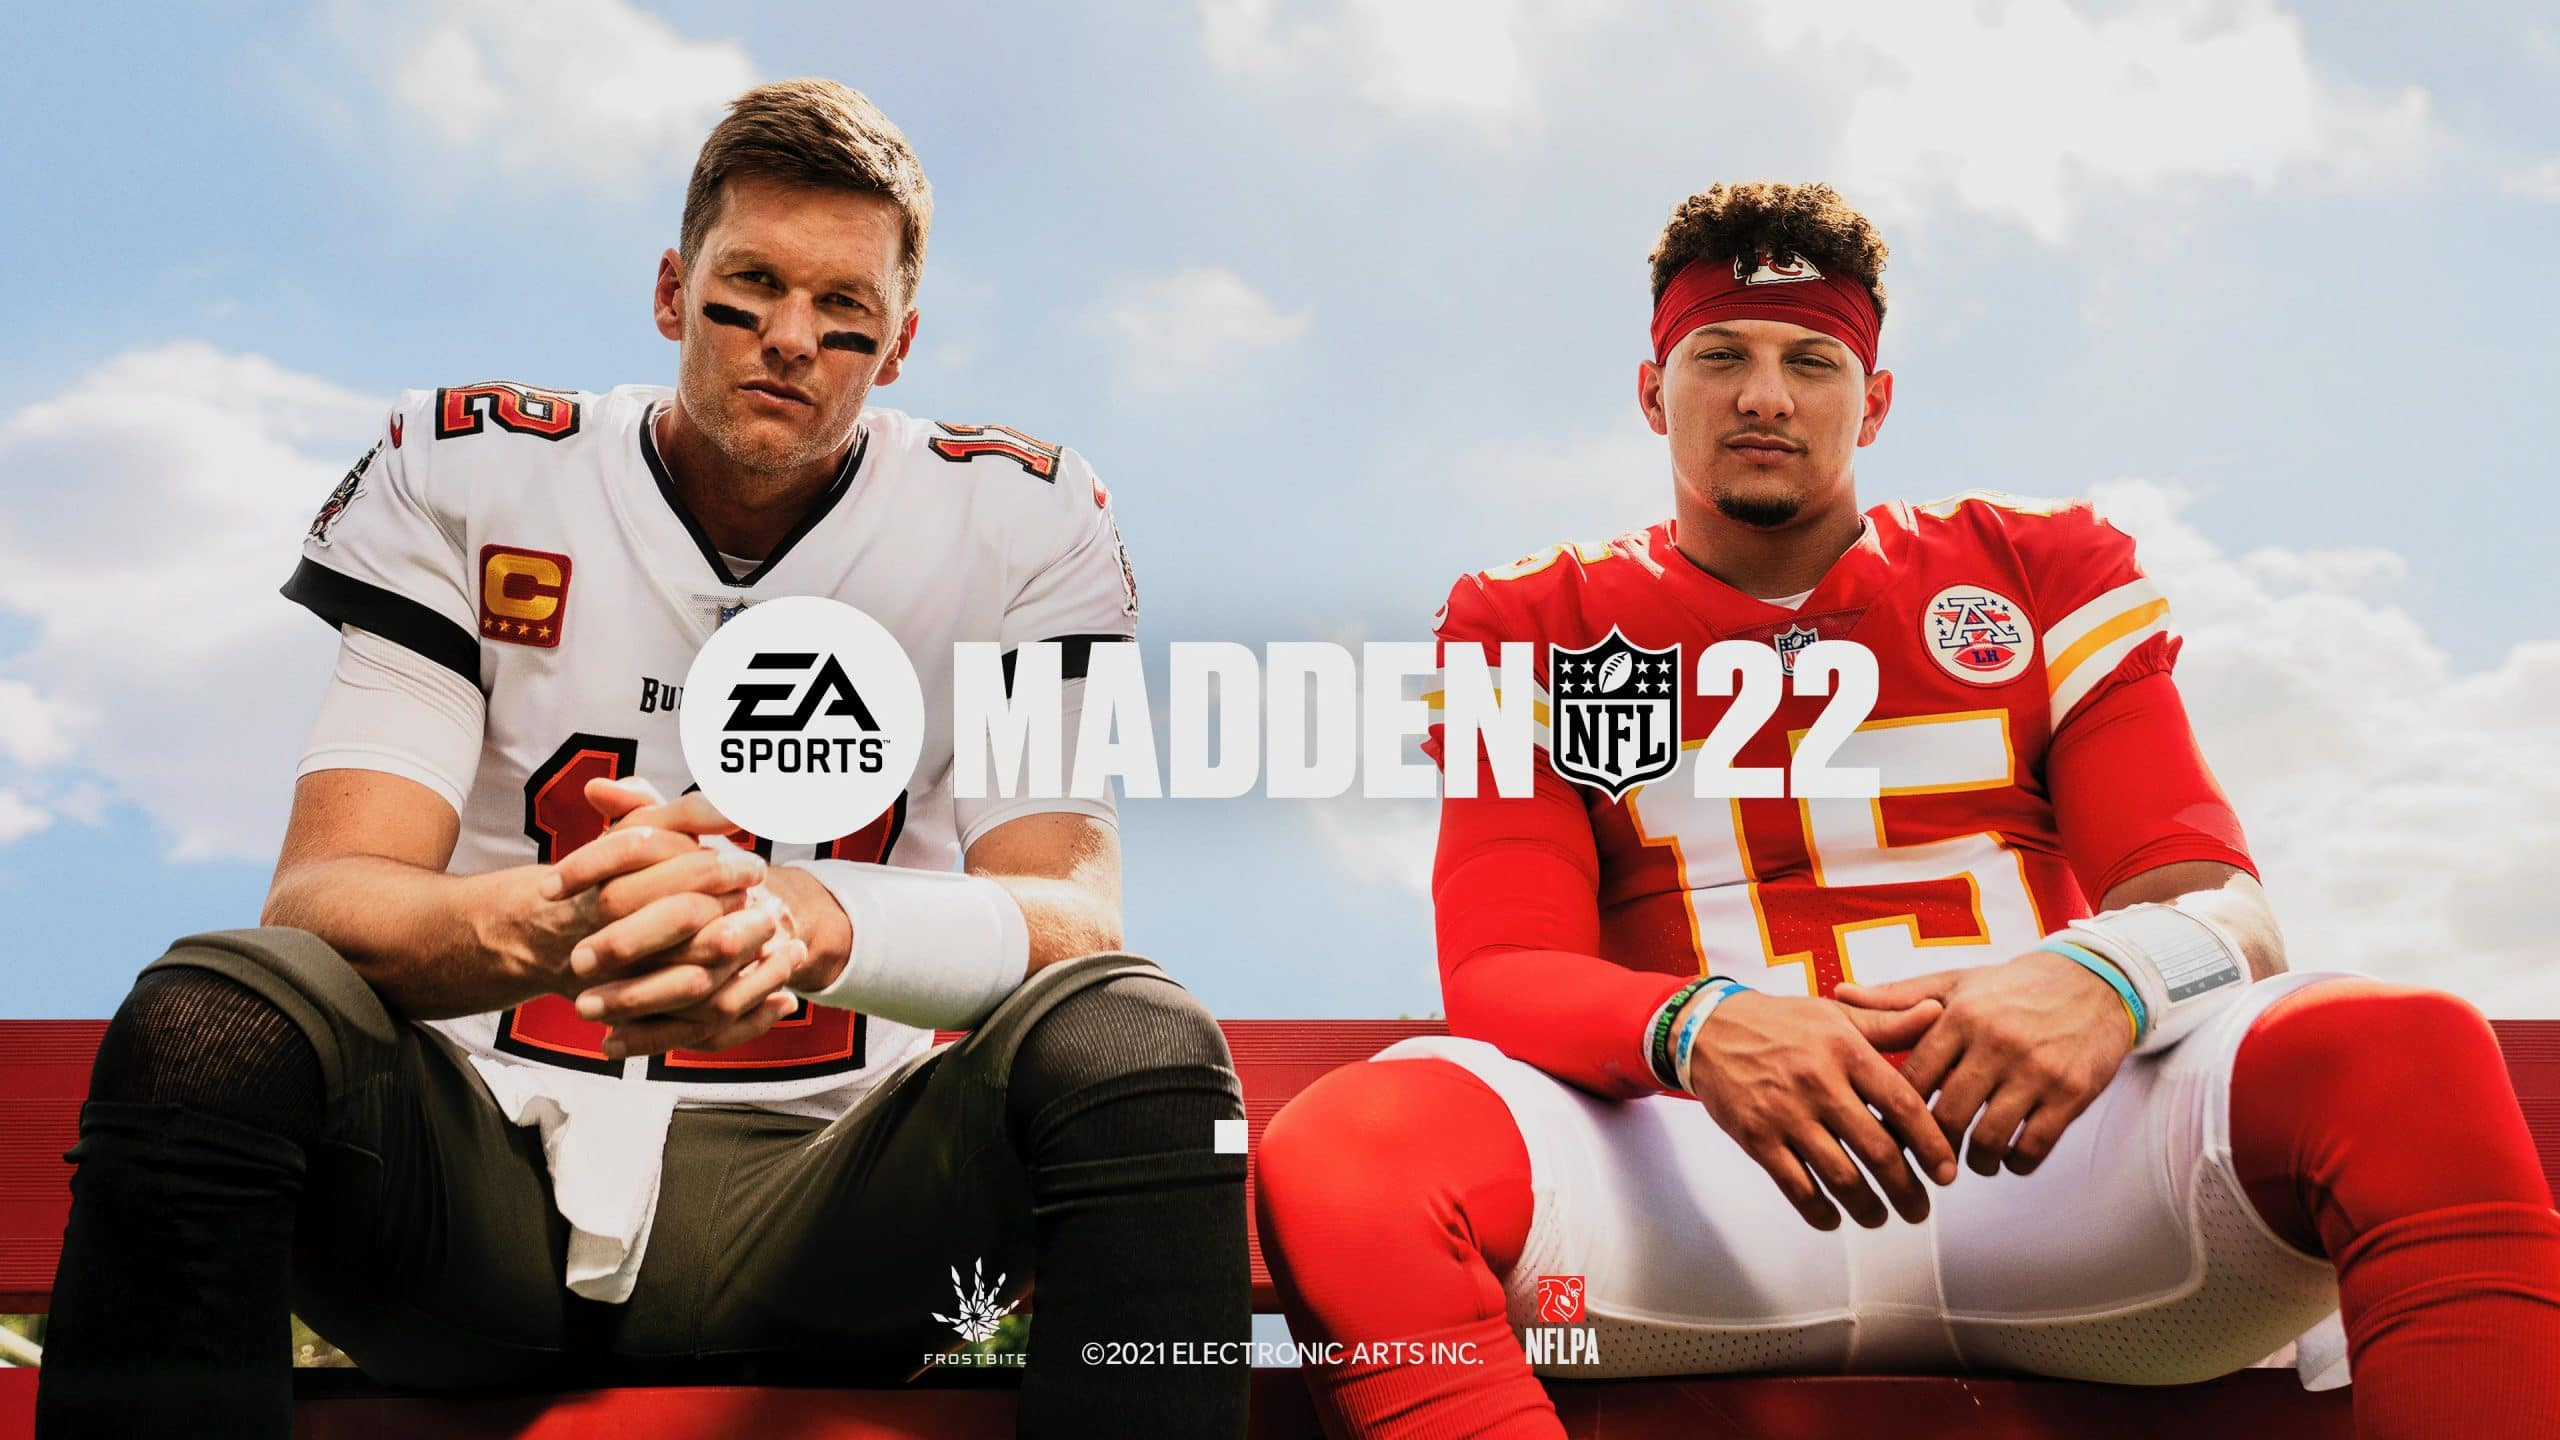 Vale a pena, Madden NFL 22?